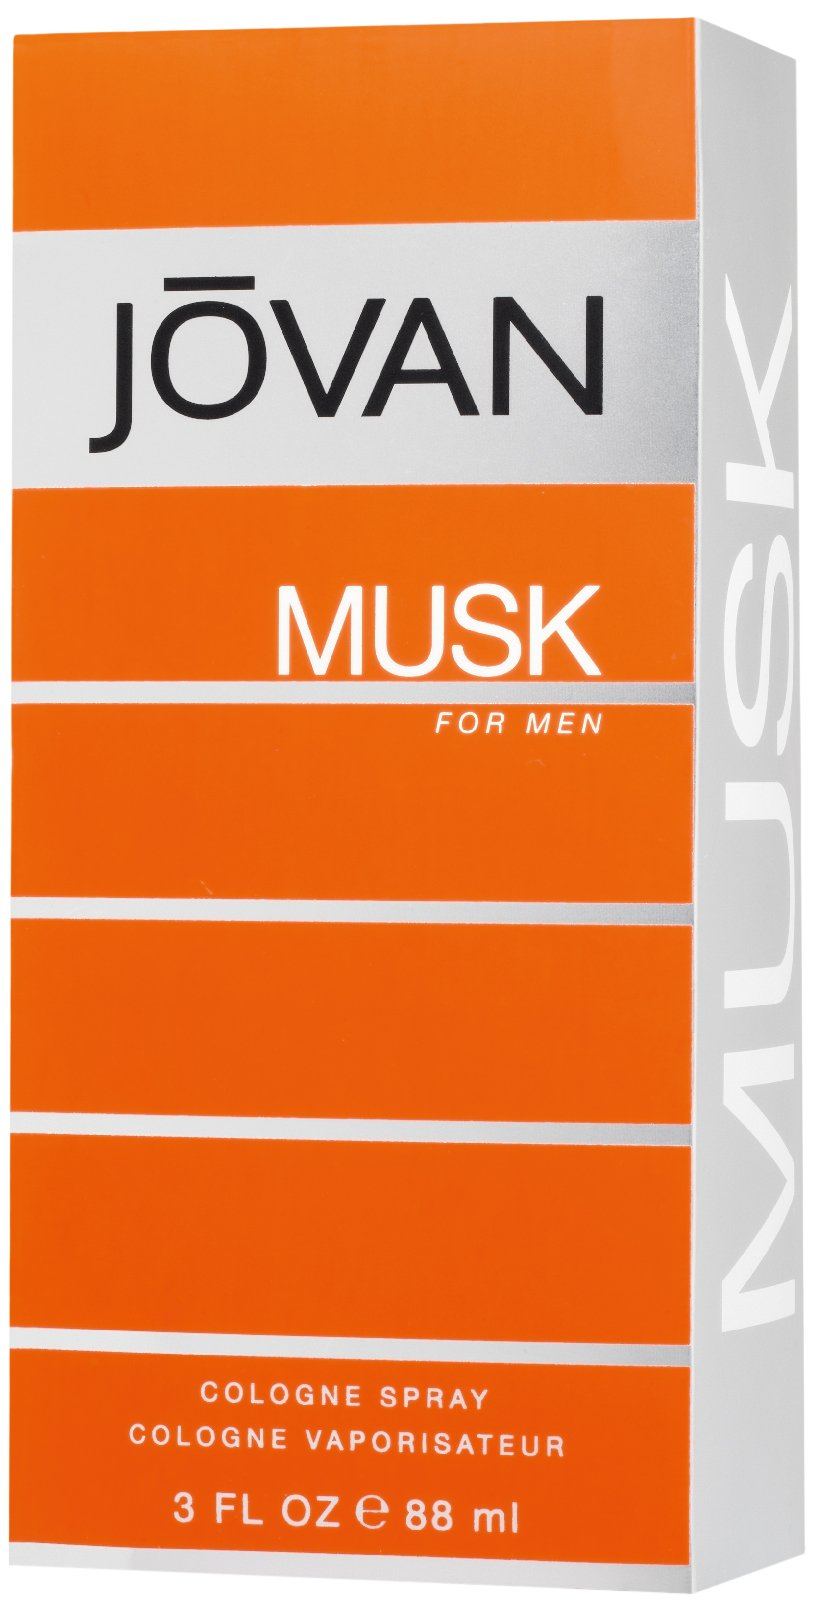 Jovan Musk By Jovan For Men Cologne Spray 3 Ounce Bottle